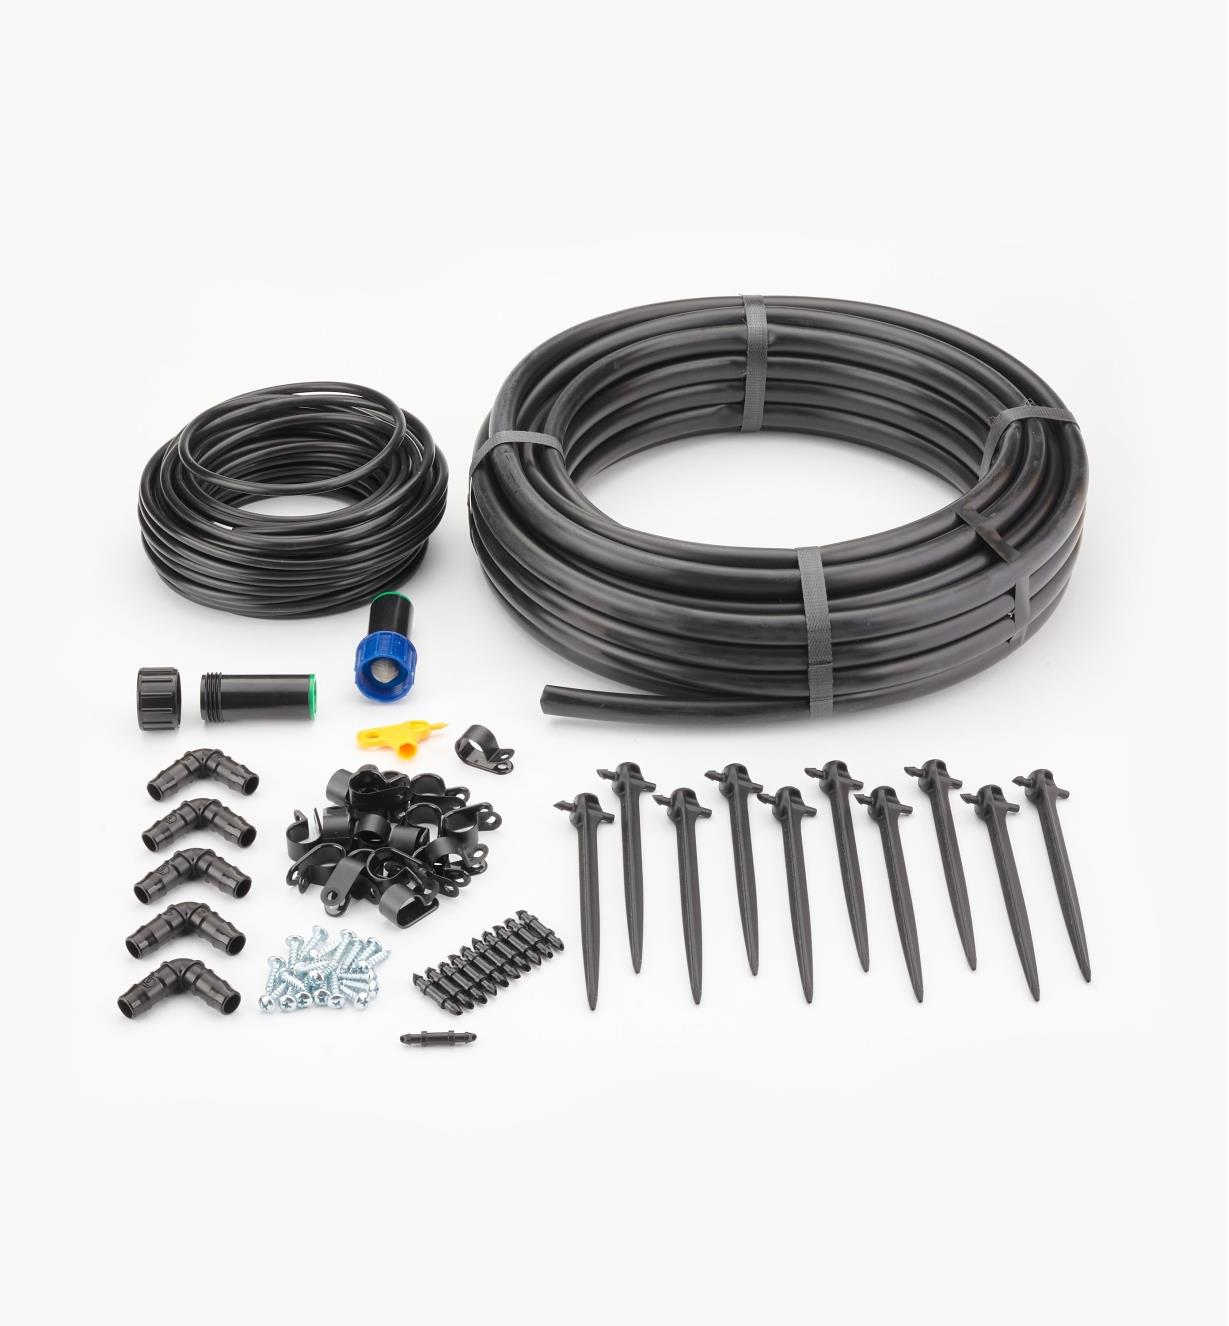 XC607 - Deck Garden Watering Kit